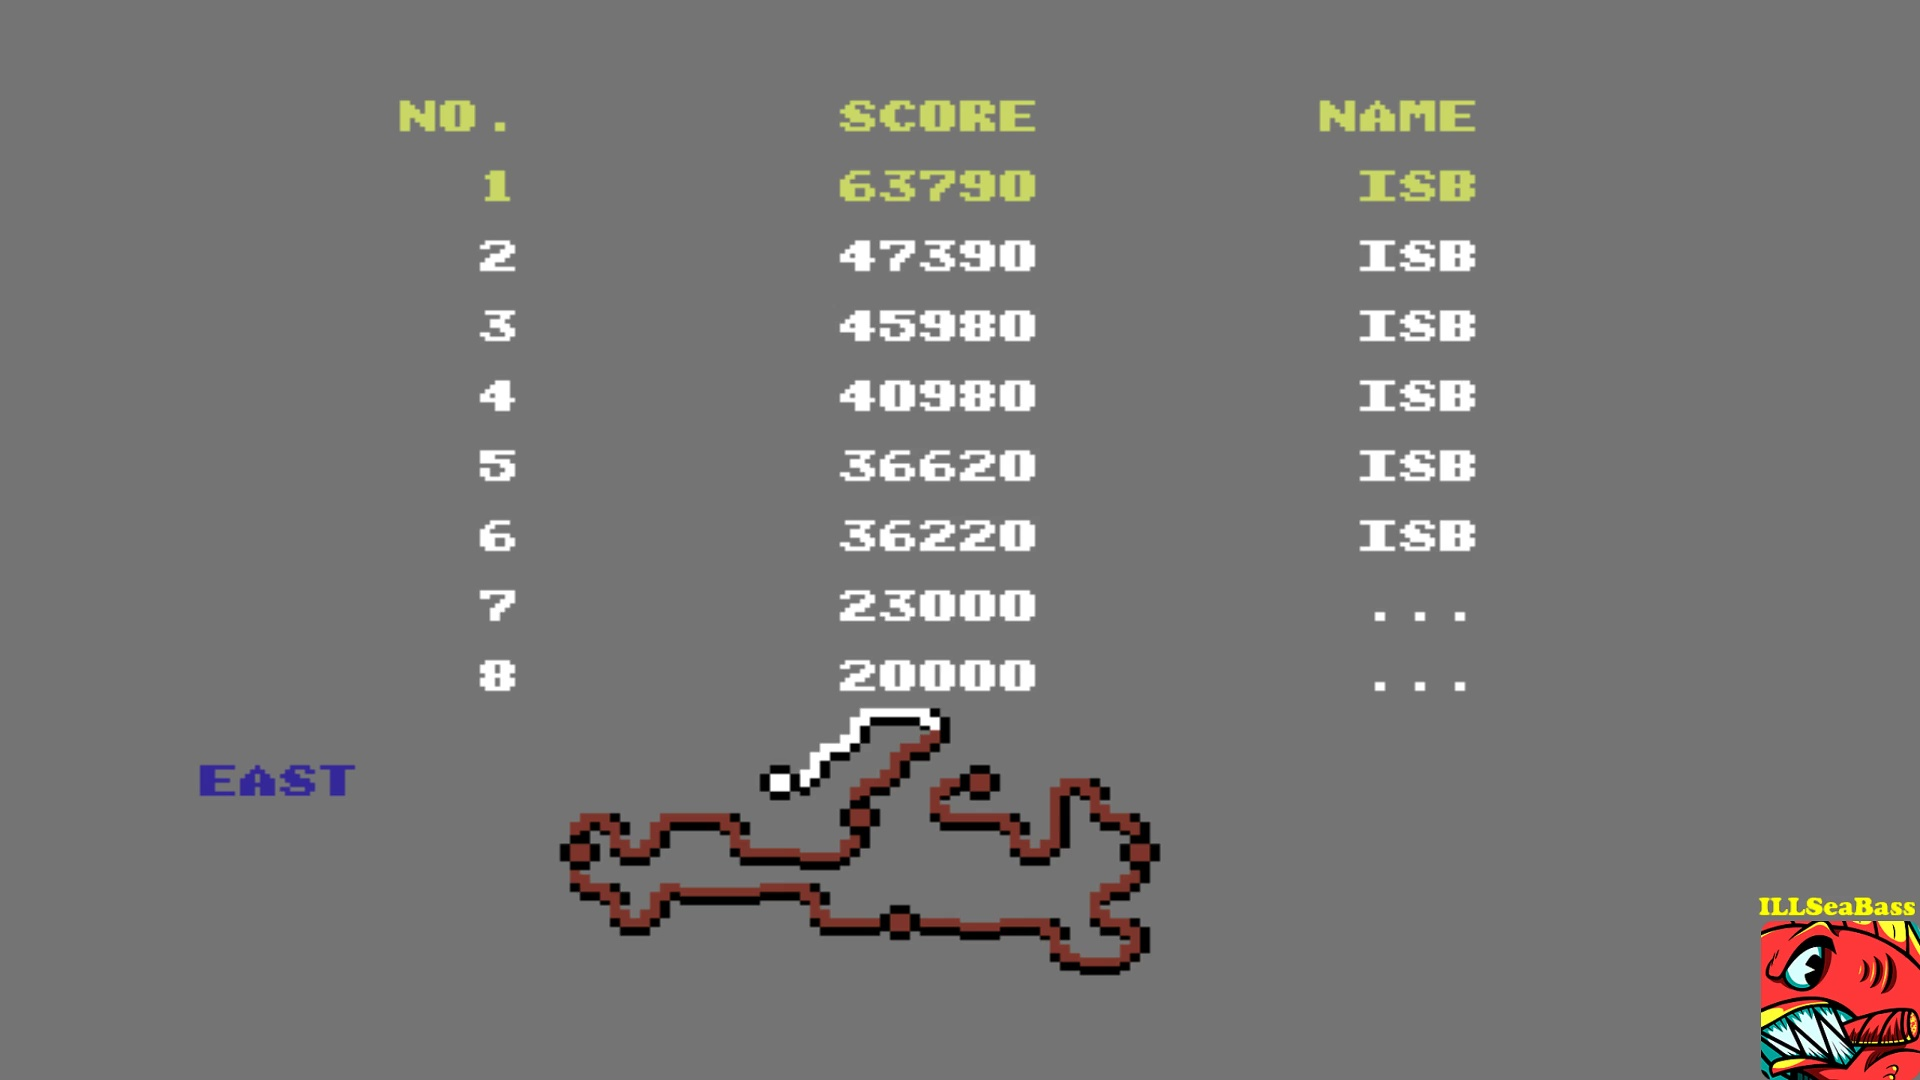 ILLSeaBass: Buggy Boy: East (Commodore 64 Emulated) 63,790 points on 2017-10-21 14:11:50